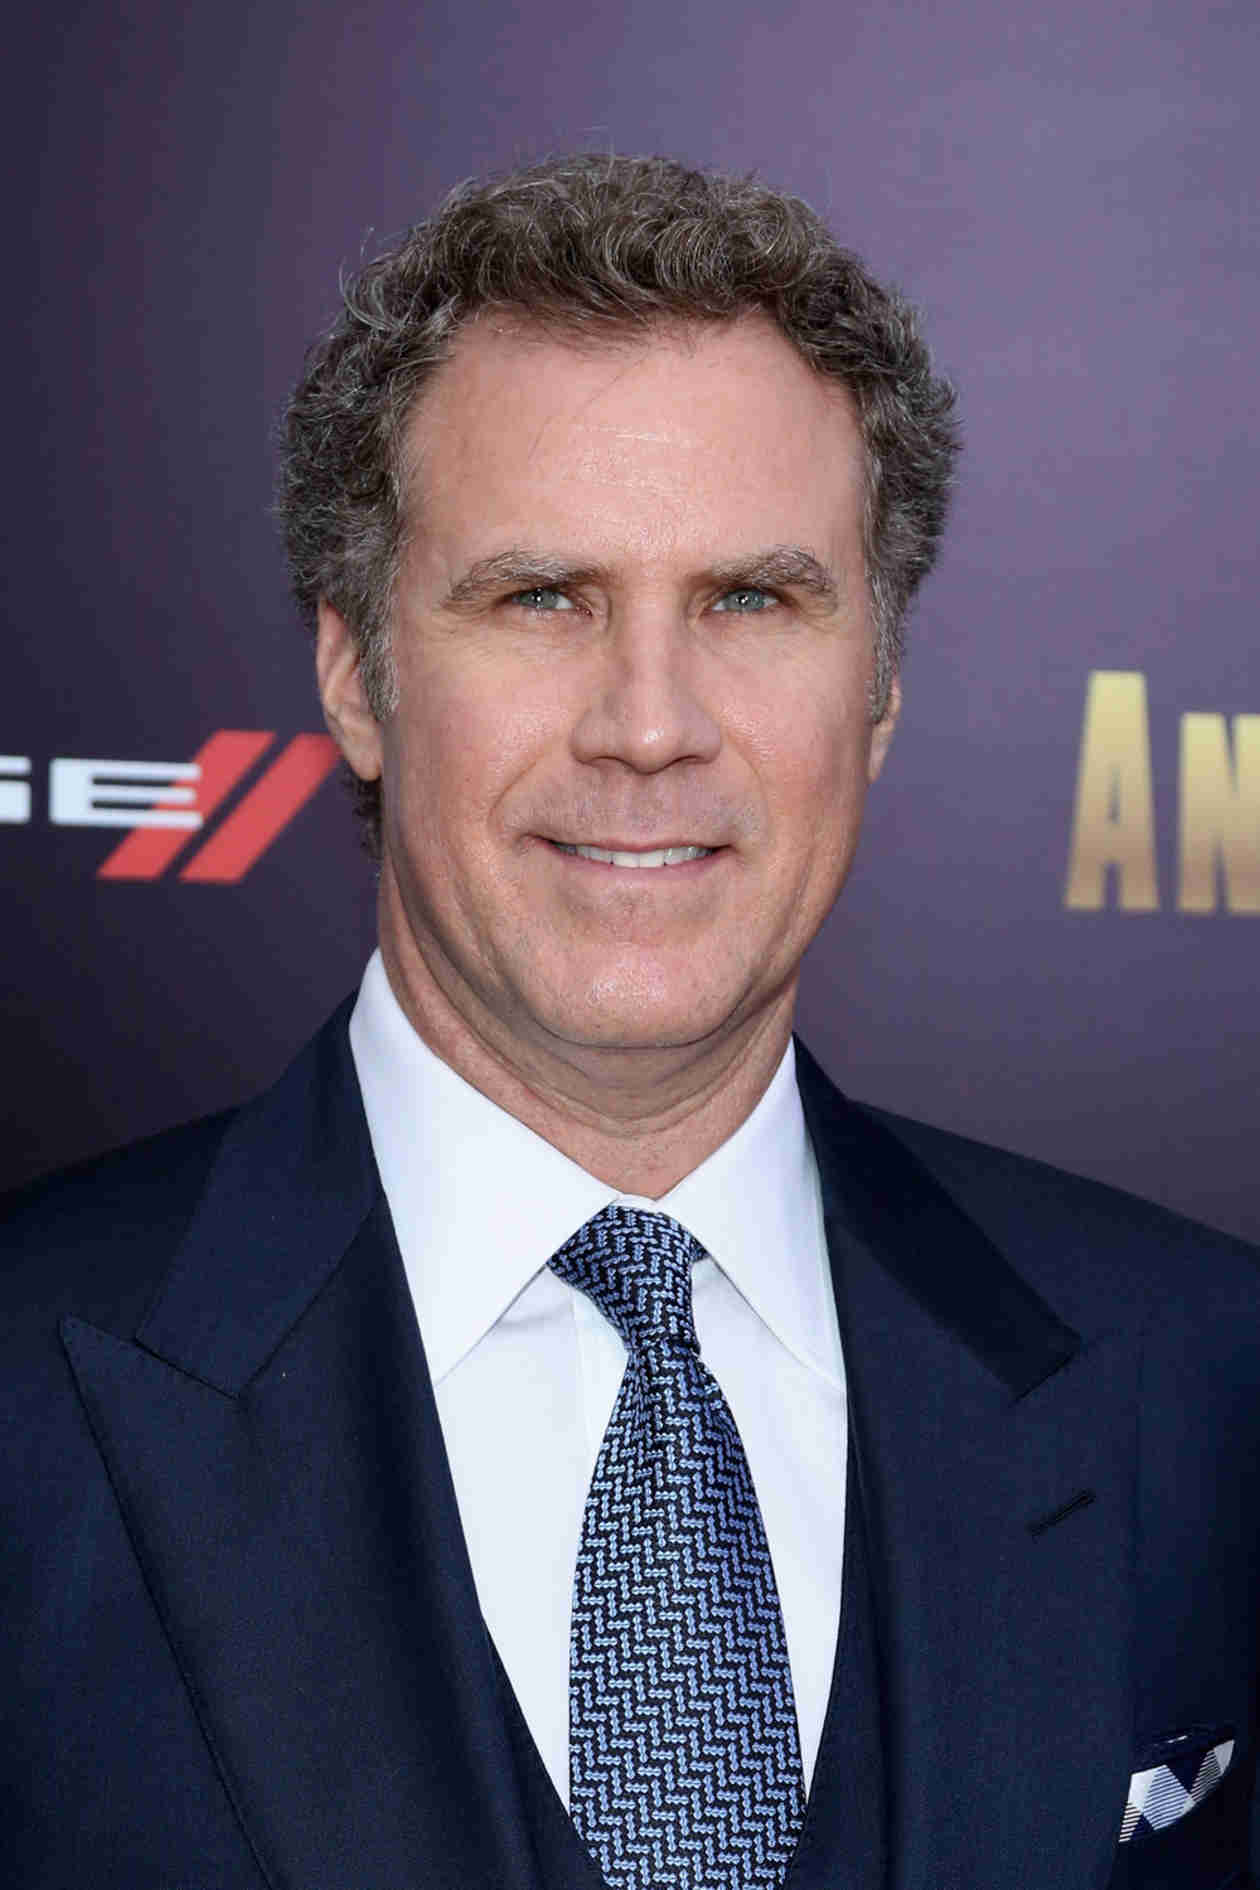 Will Ferrell Performs Ice Skating Routine Set to Downton Abbey Anthem